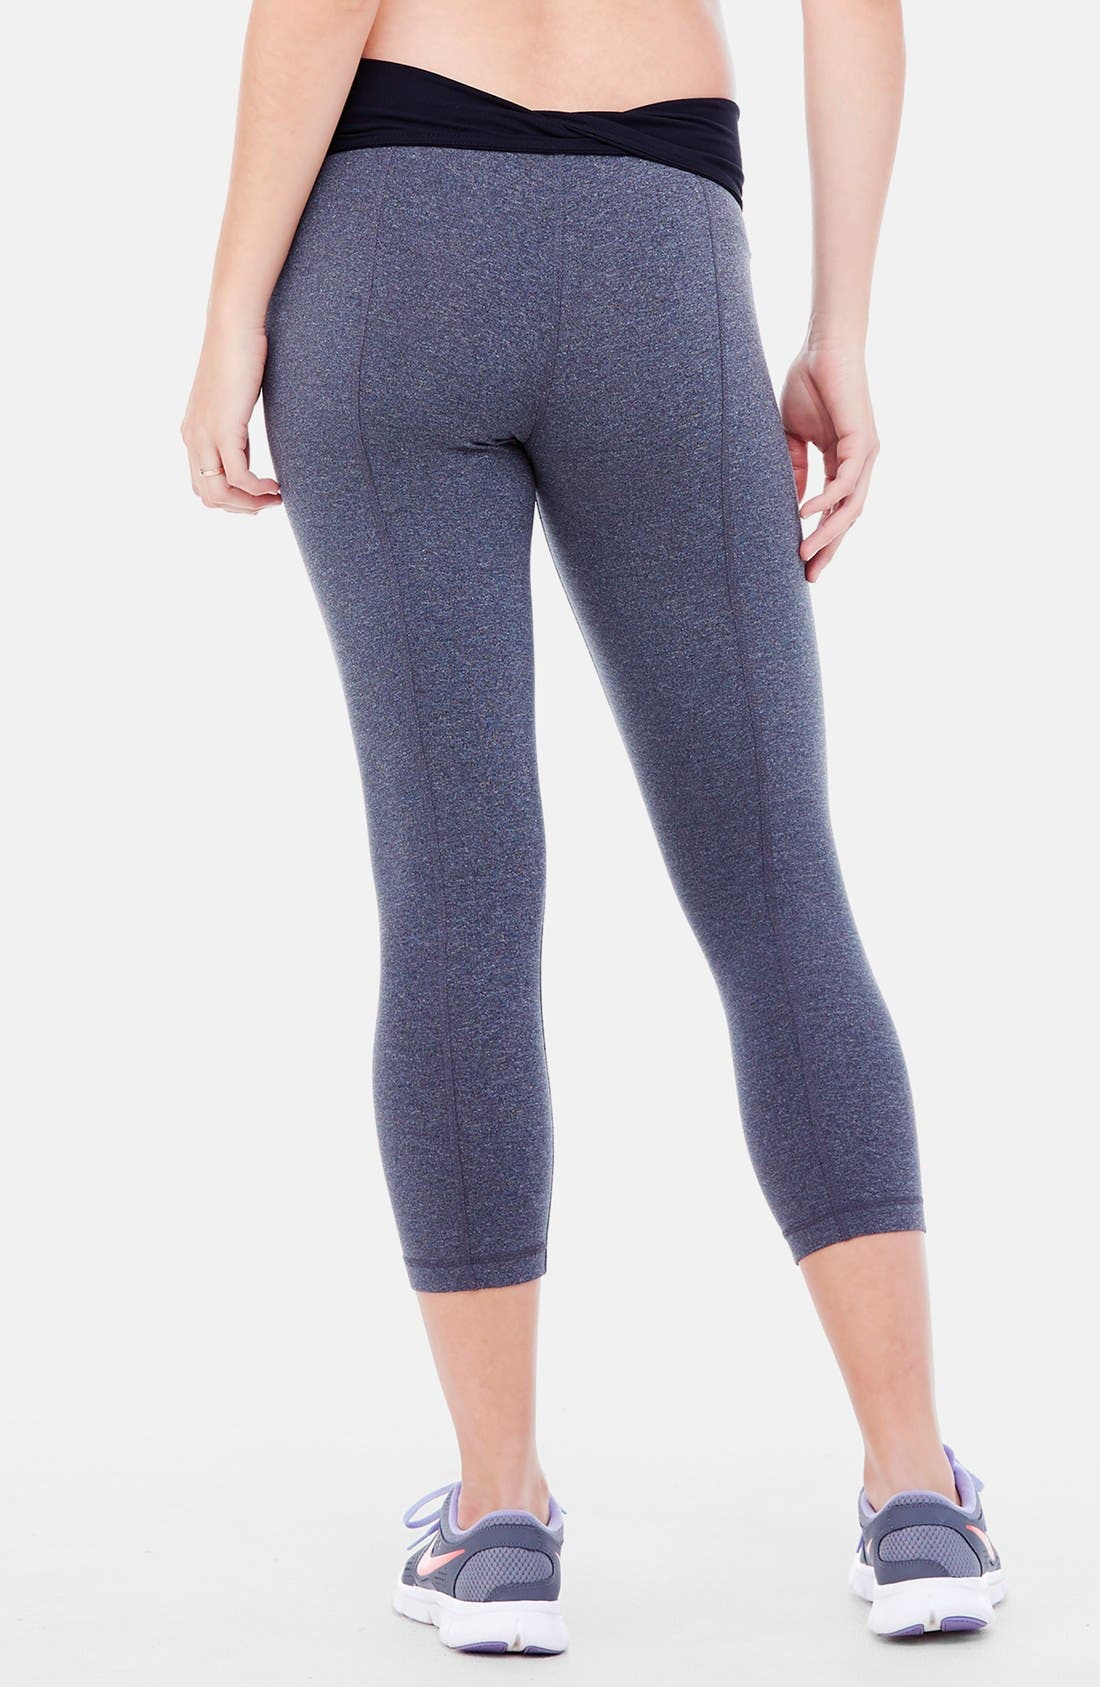 INGRID & ISABEL<SUP>®</SUP>, Active Maternity Capri Pants with Crossover Panel, Alternate thumbnail 6, color, DARK HEATHER GREY